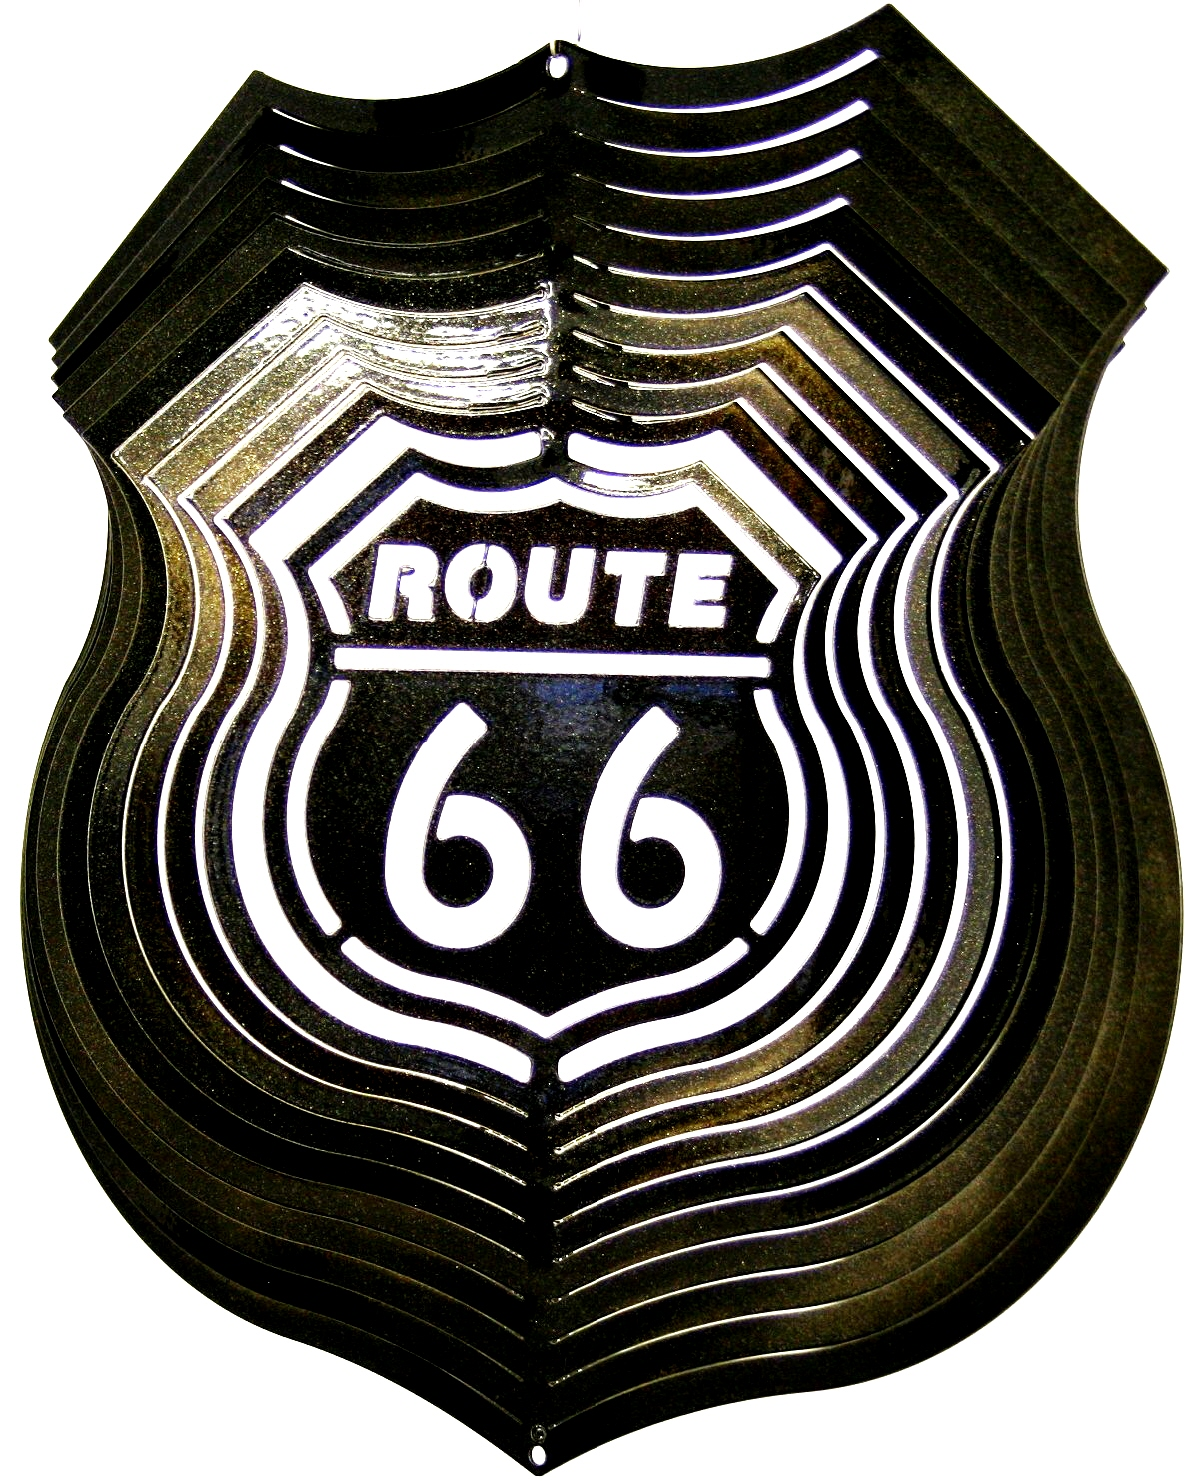 12 INCH ROUTE 66 WIND SPINNER